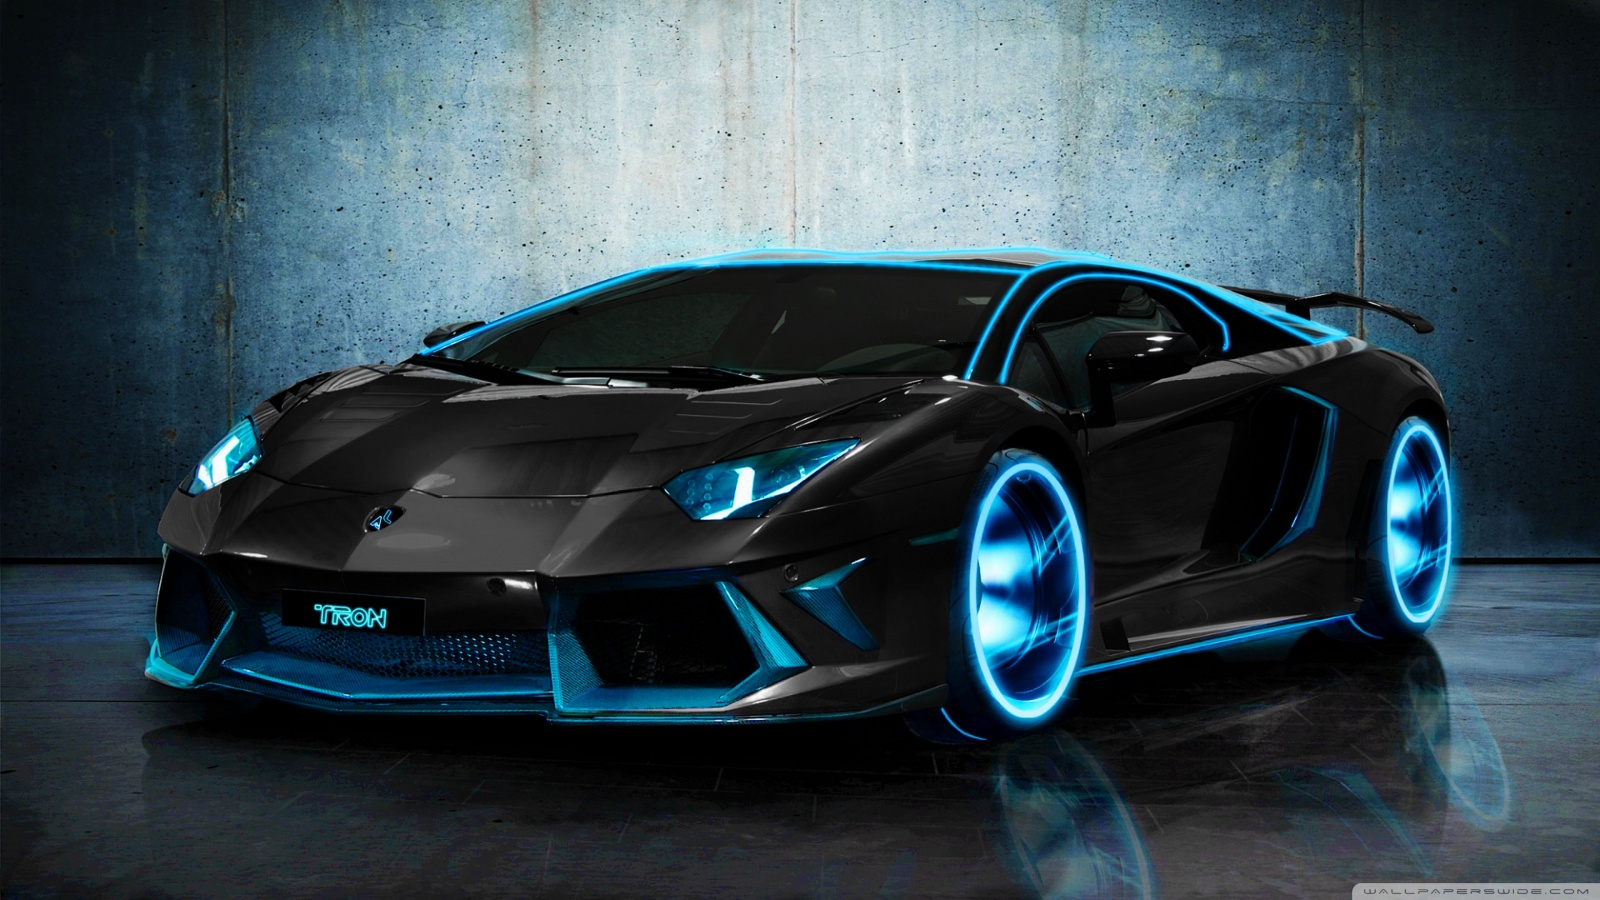 HD Wallpapers Of Modified Cars